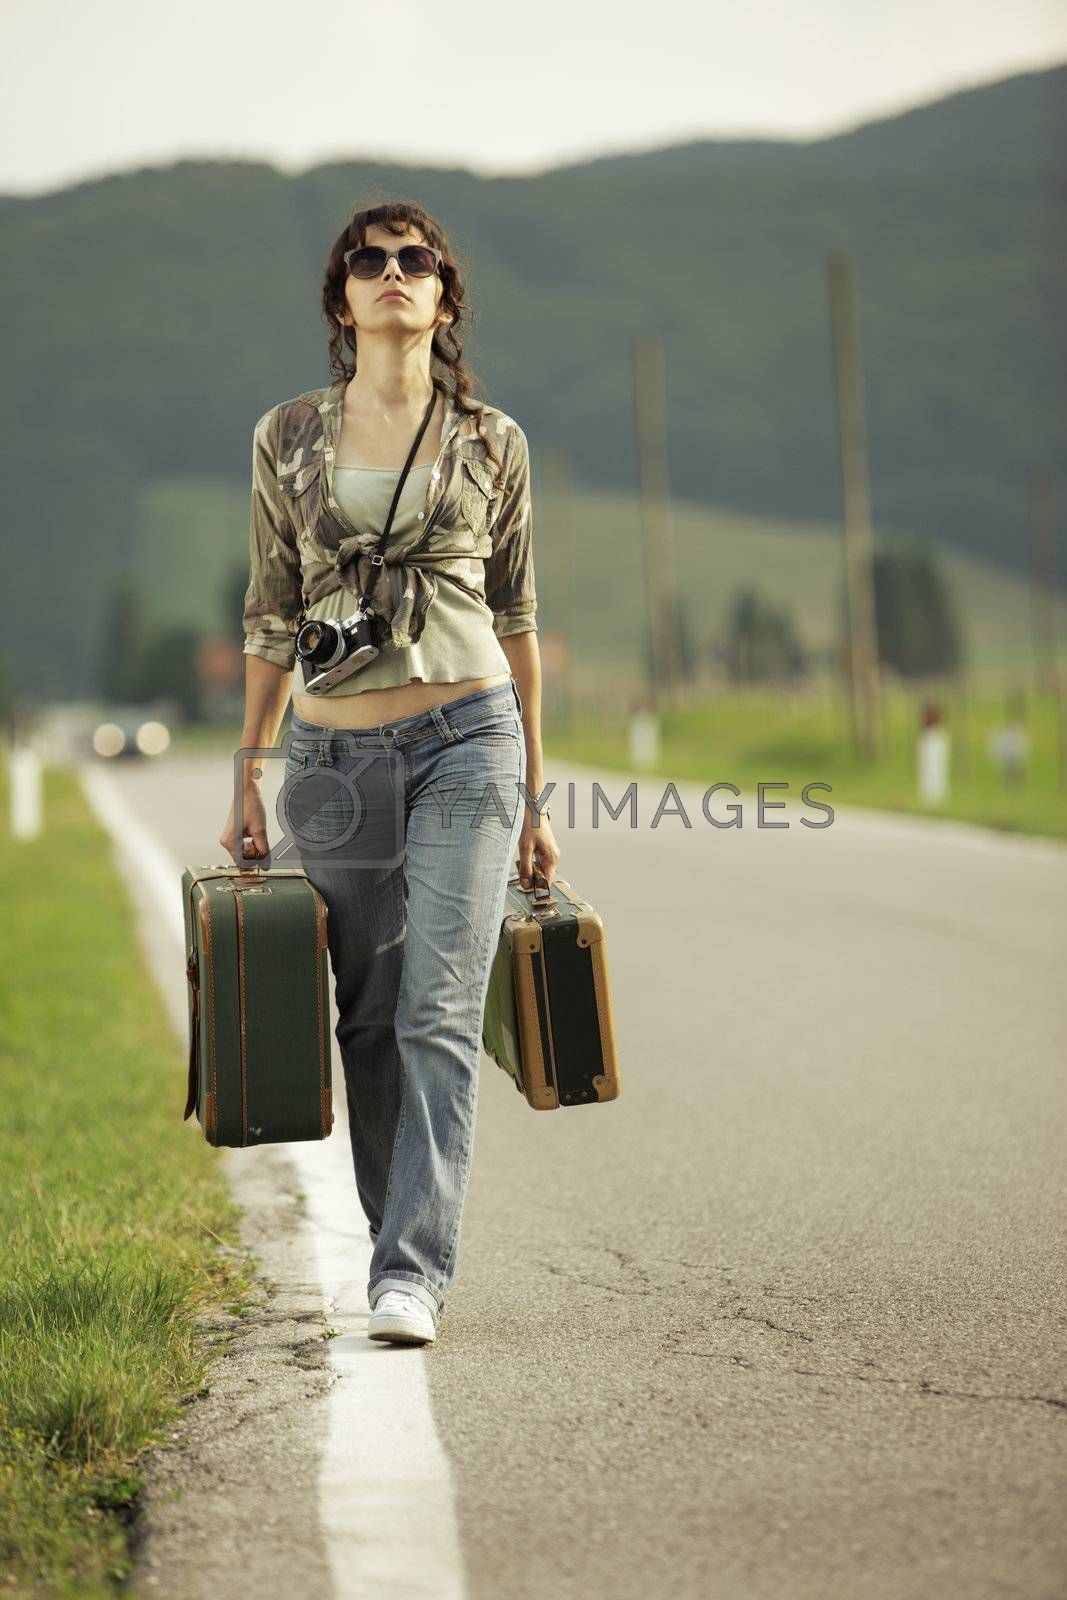 Young woman runaway walks away road